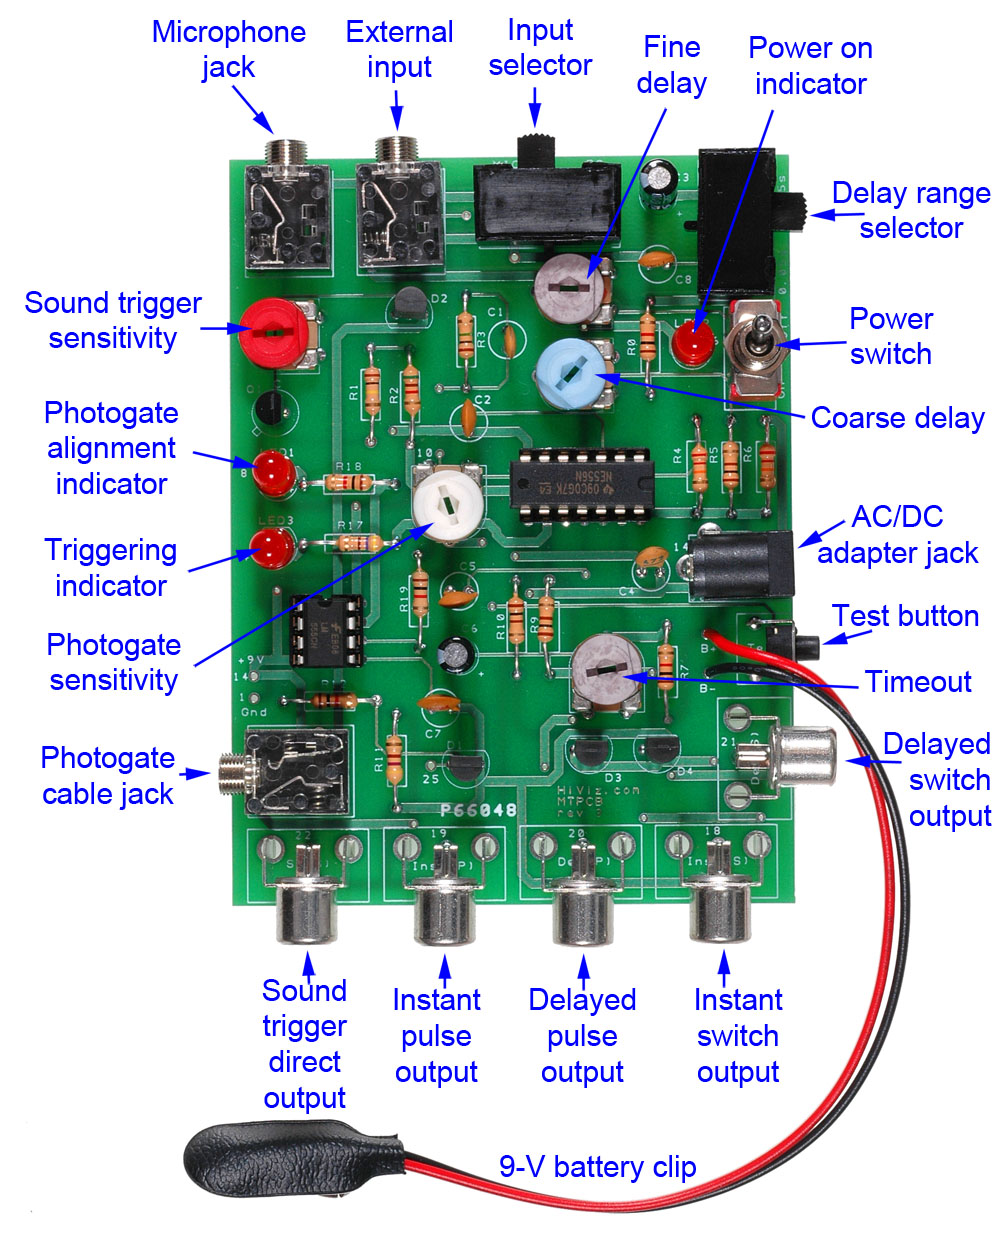 Operating Instructions For The Mt Pcb3 Pulse Delay Circuit Photogate With Delayed Flash